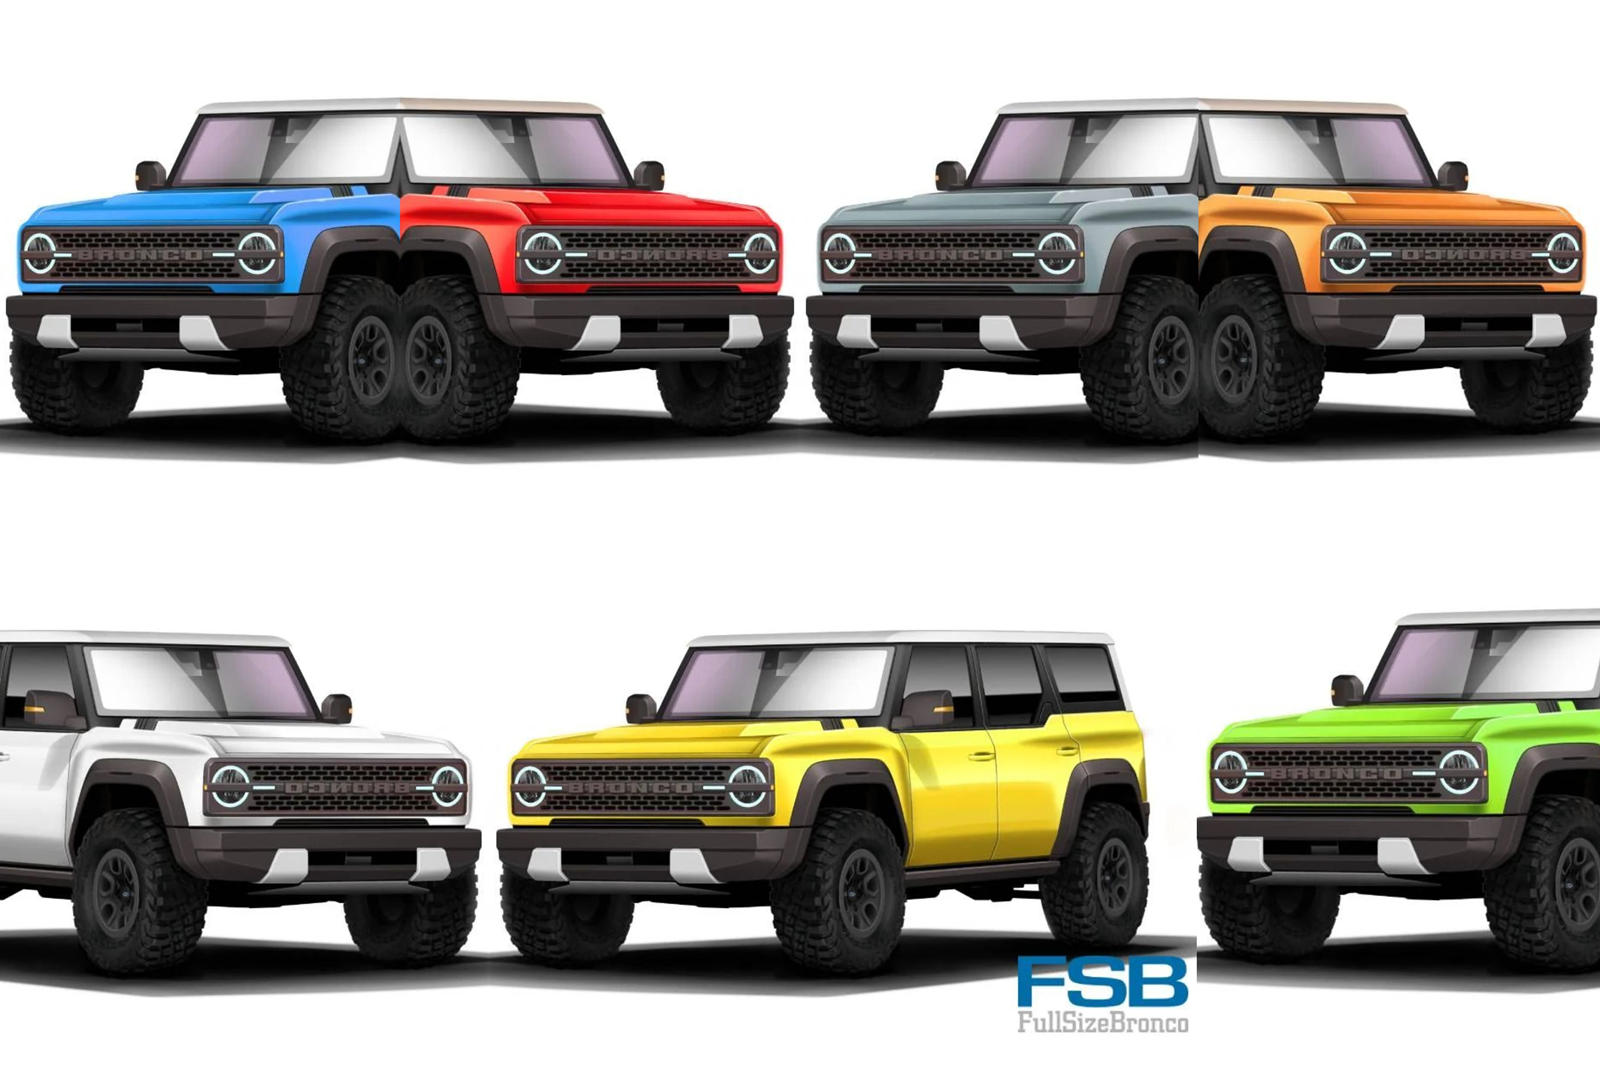 Leaked Here Are The Colors For The New Ford Bronco Carbuzz